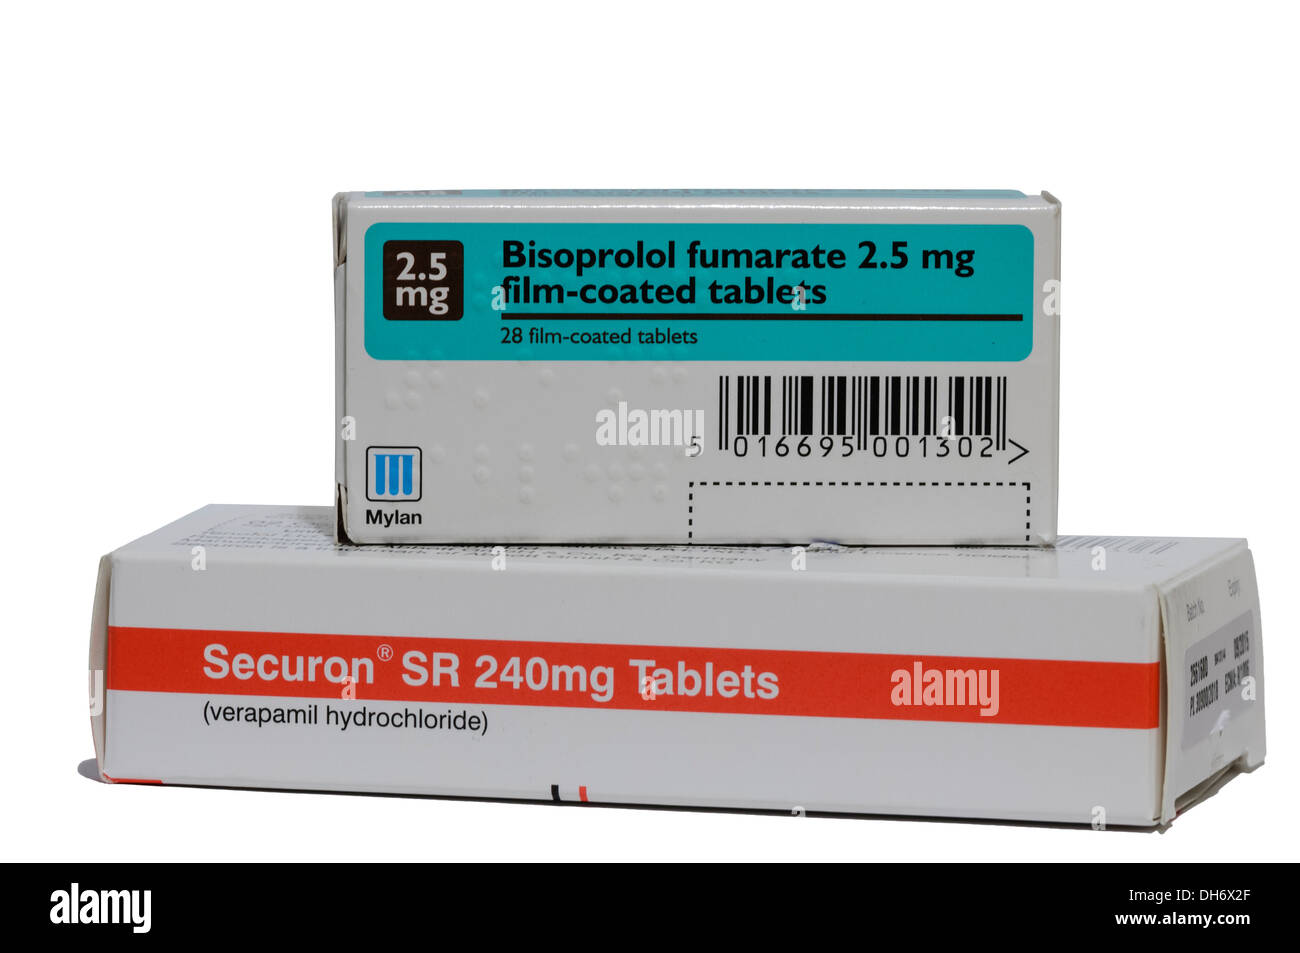 Bisoprolol fumarate 2.5mg with Verapamil hydrochloride, two heart tablets which should never be taken together as - Stock Image